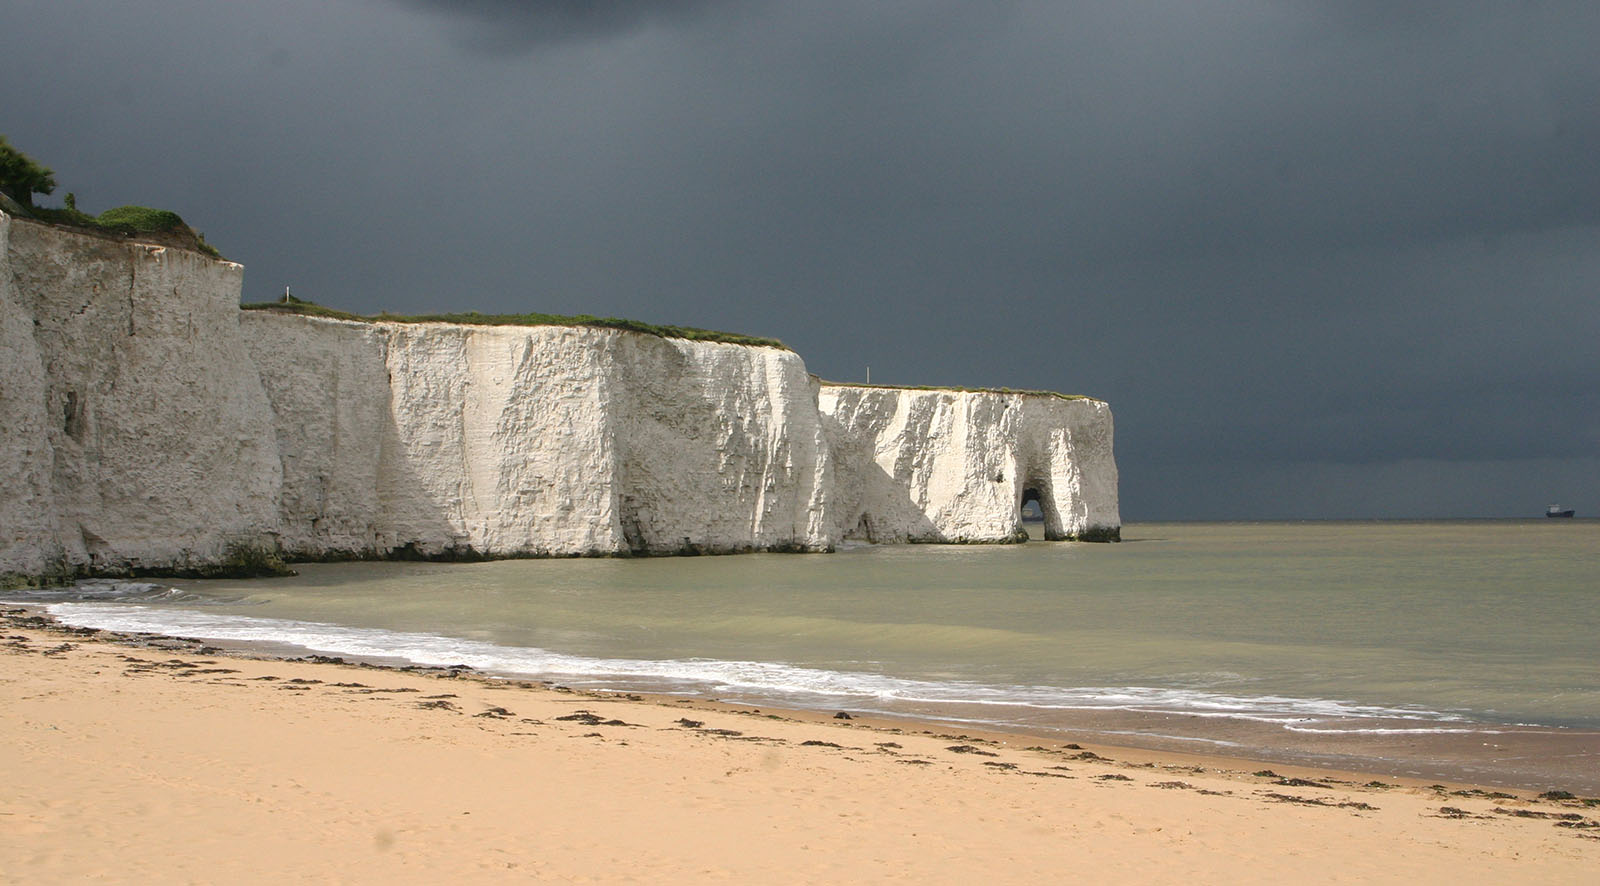 View of Kingsgate Bay, Broadstairs, Kent.